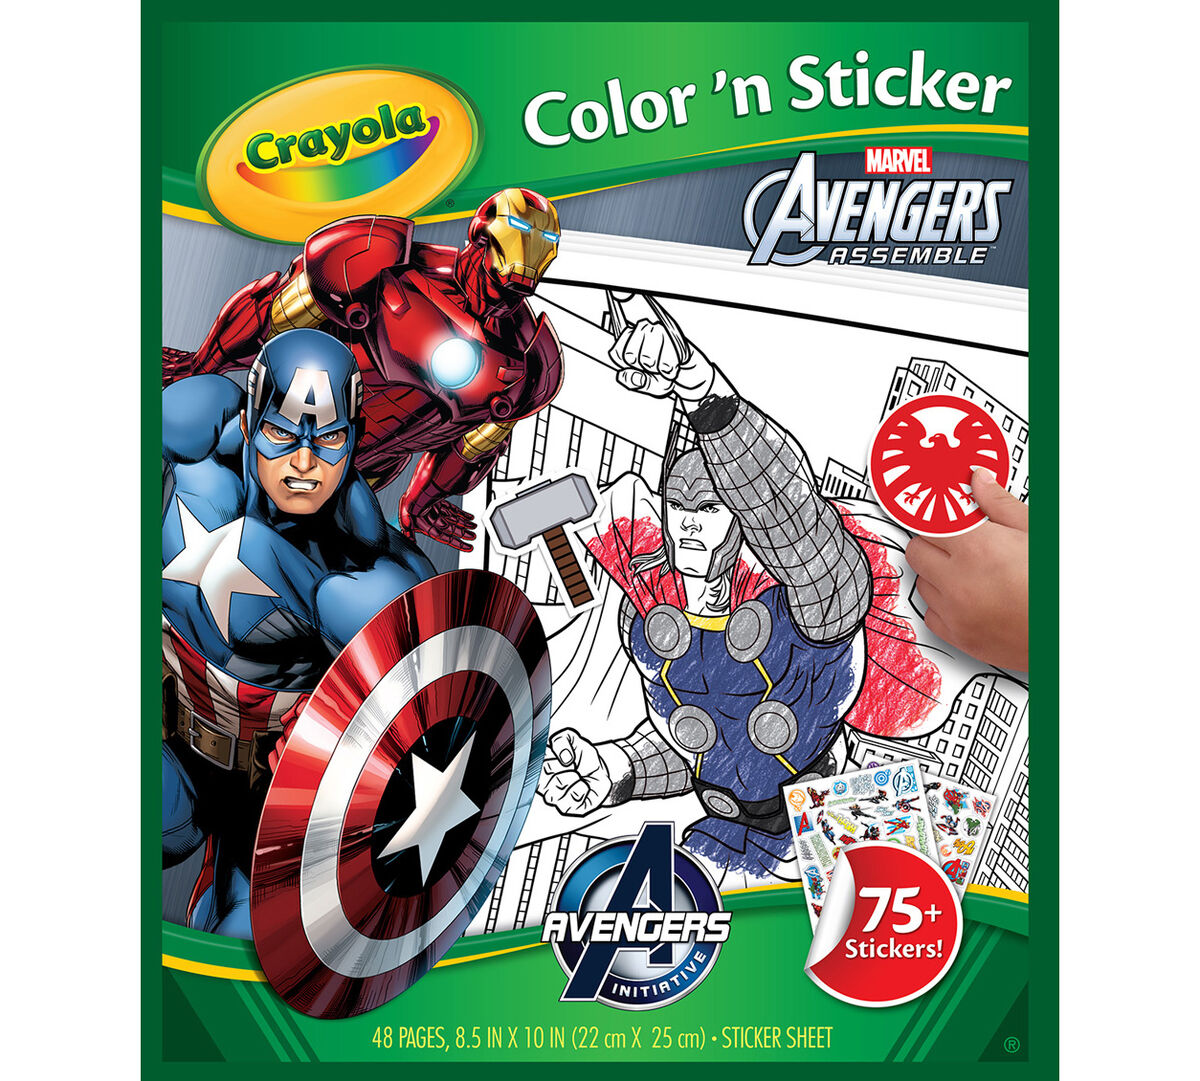 <p> Enjoy the Marvel Avengers Assemble Color 'n Sticker for hours!  Featuring 48 coloring pages and 75+ stickers for decorating fun!</p>